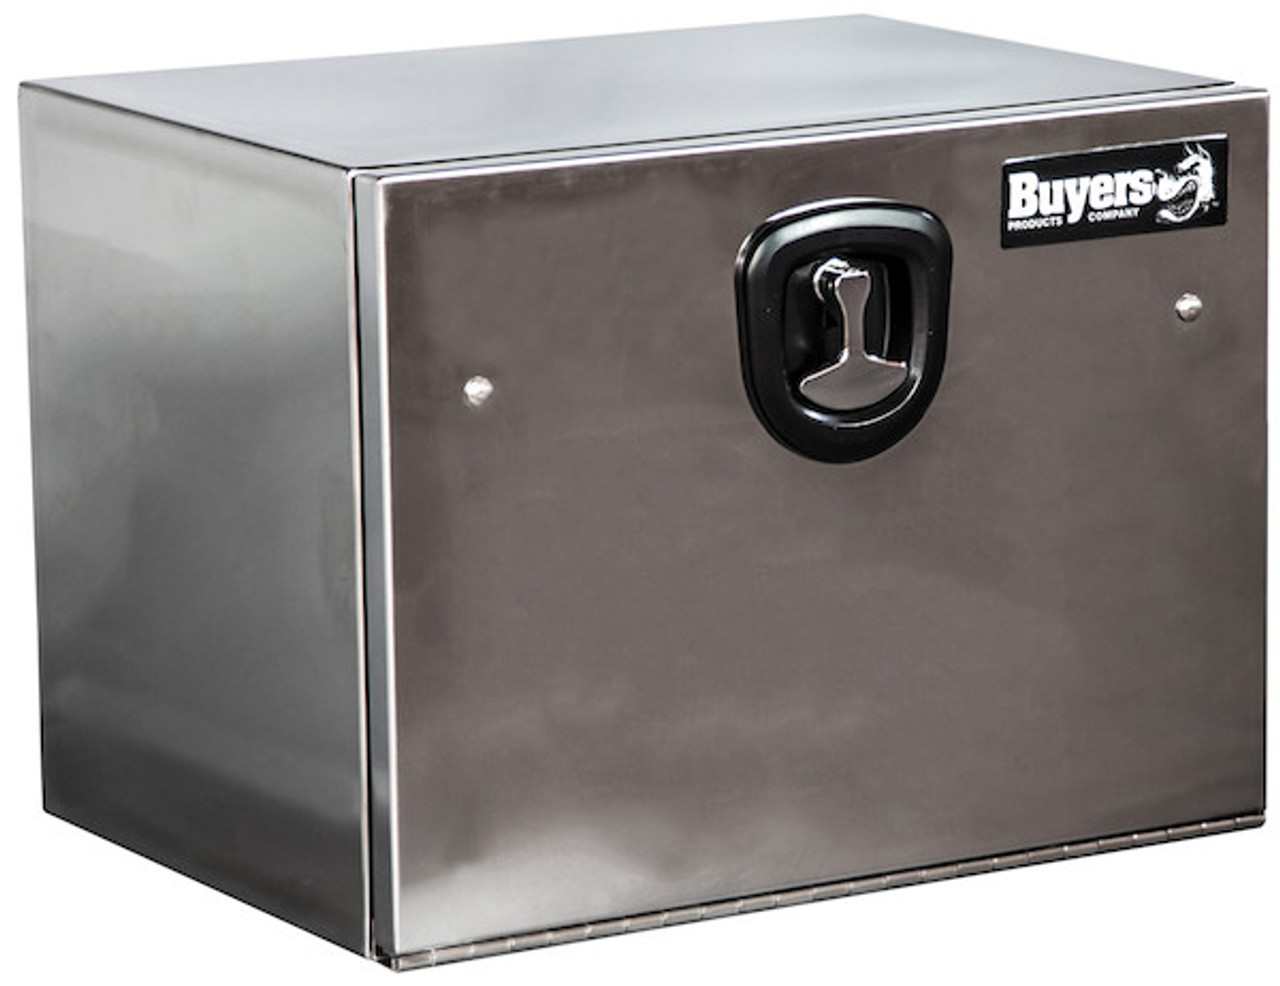 1702653 BUYERS PRODUCTS STAINLESS STEEL UNDERBODY TRUCK BOX TOOLBOX